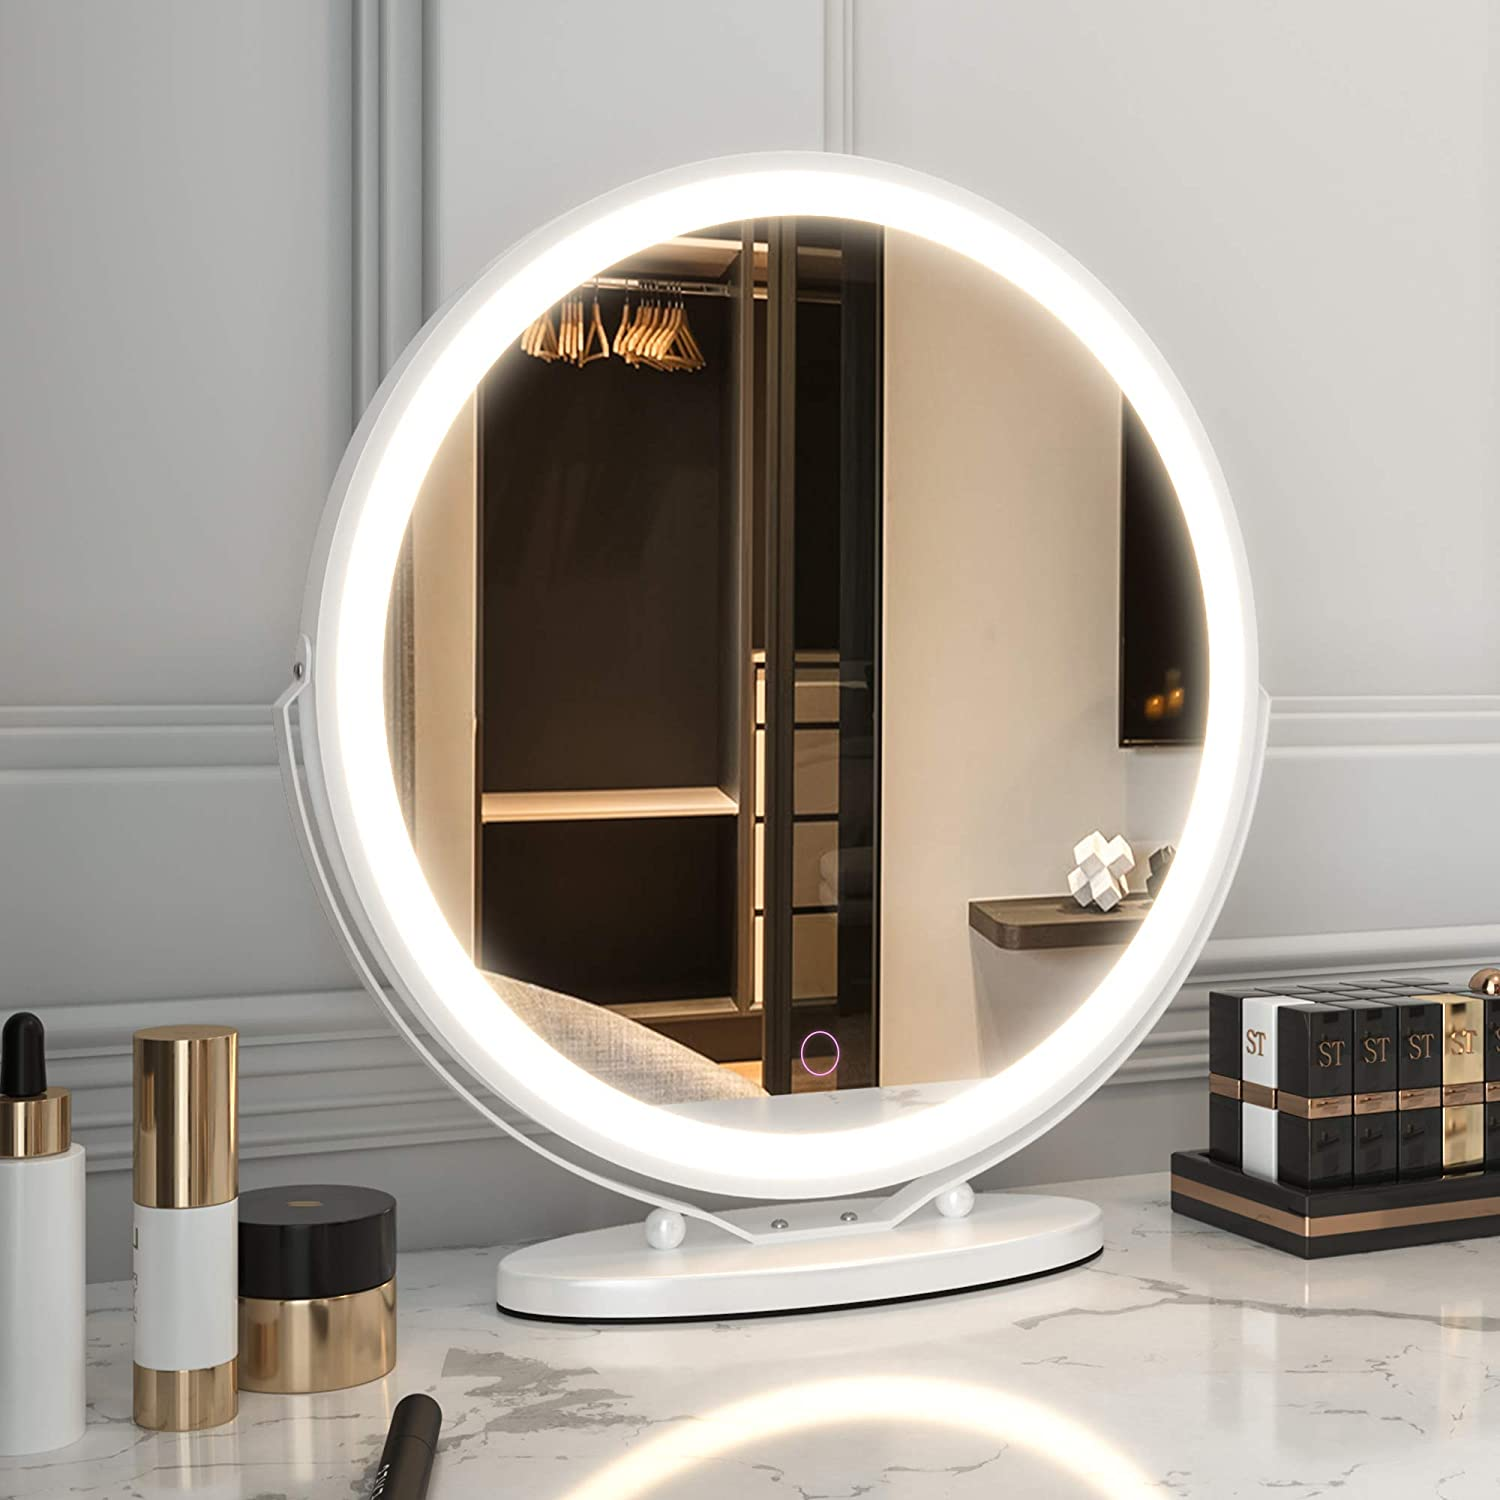 LVSOMT Vanity Makeup All stores are sold Mirror with Dimmab 3 Popular brand Color Lighting Lights